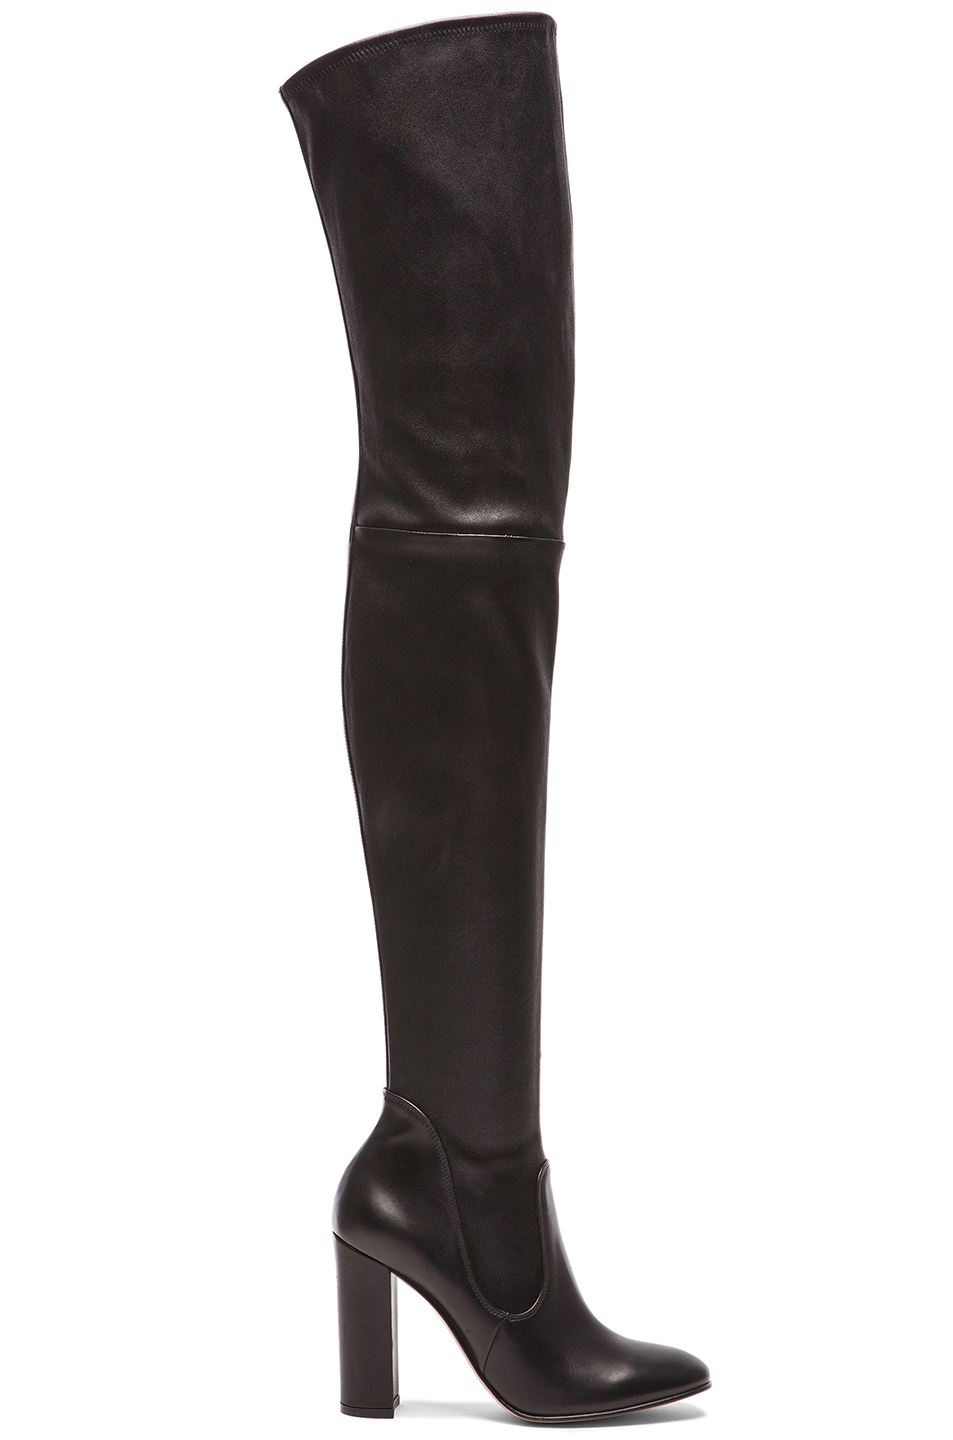 Image 1 of Gianvito Rossi Leather Thigh High Boots in Black